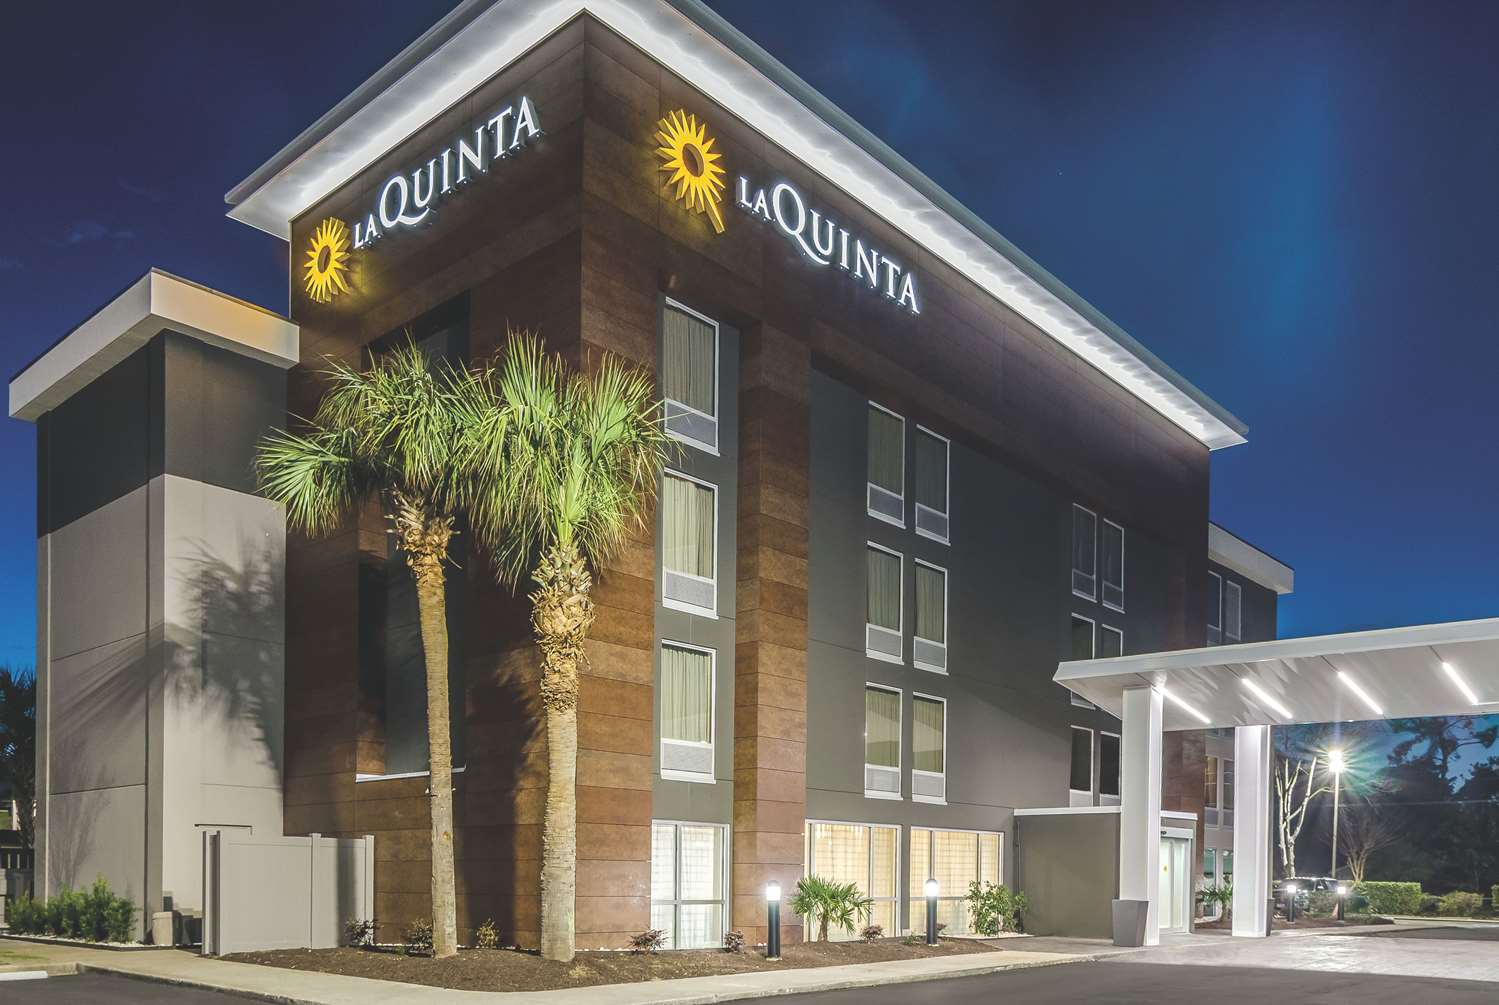 Exterior view - La Quinta Inn & Suites at 48th Ave Myrtle Beach